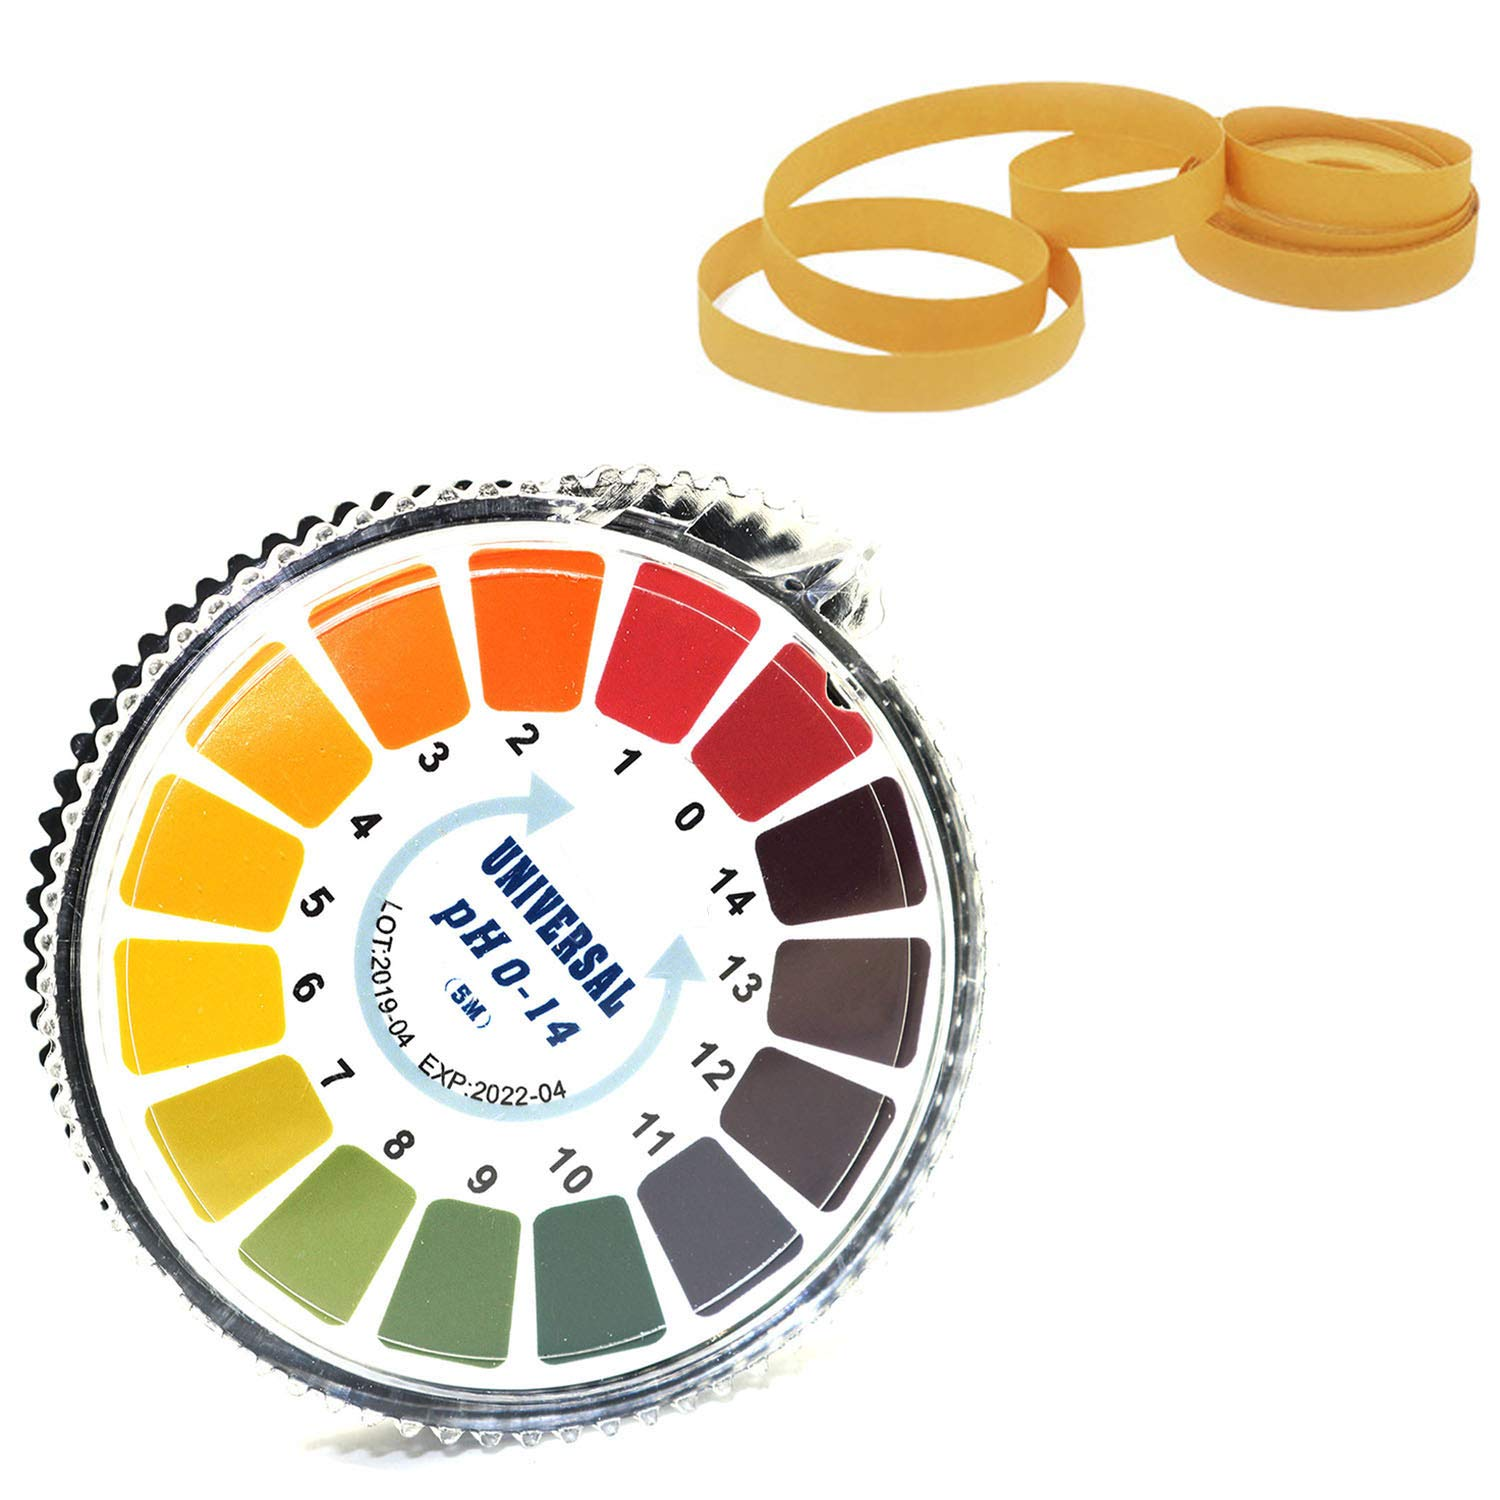 DGZZI 1 Roll PH Test Strips 0-14 16.4ft Alkaline Acid Indicator Meter Test Paper Roll for Water Urine Saliva Soil Litmus Accurate Testing Measuring Tool